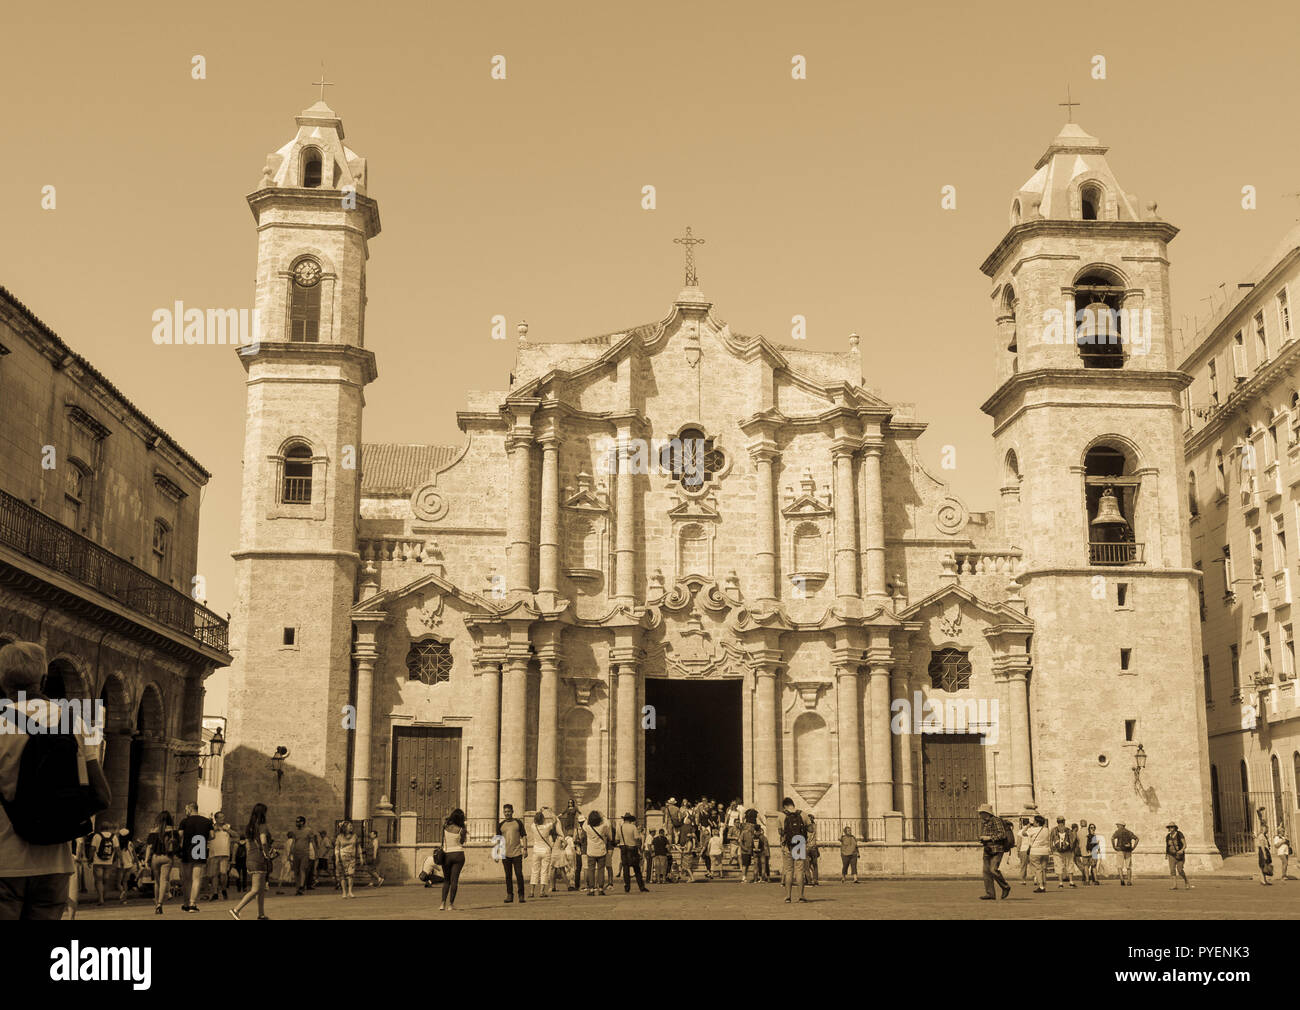 HAVANA, CUBA - JANUARY 16, 2017: Plaza de la Catedral (English: Cathedral Square) is one of the five main squares in Old Havana and the site of the Ca - Stock Image